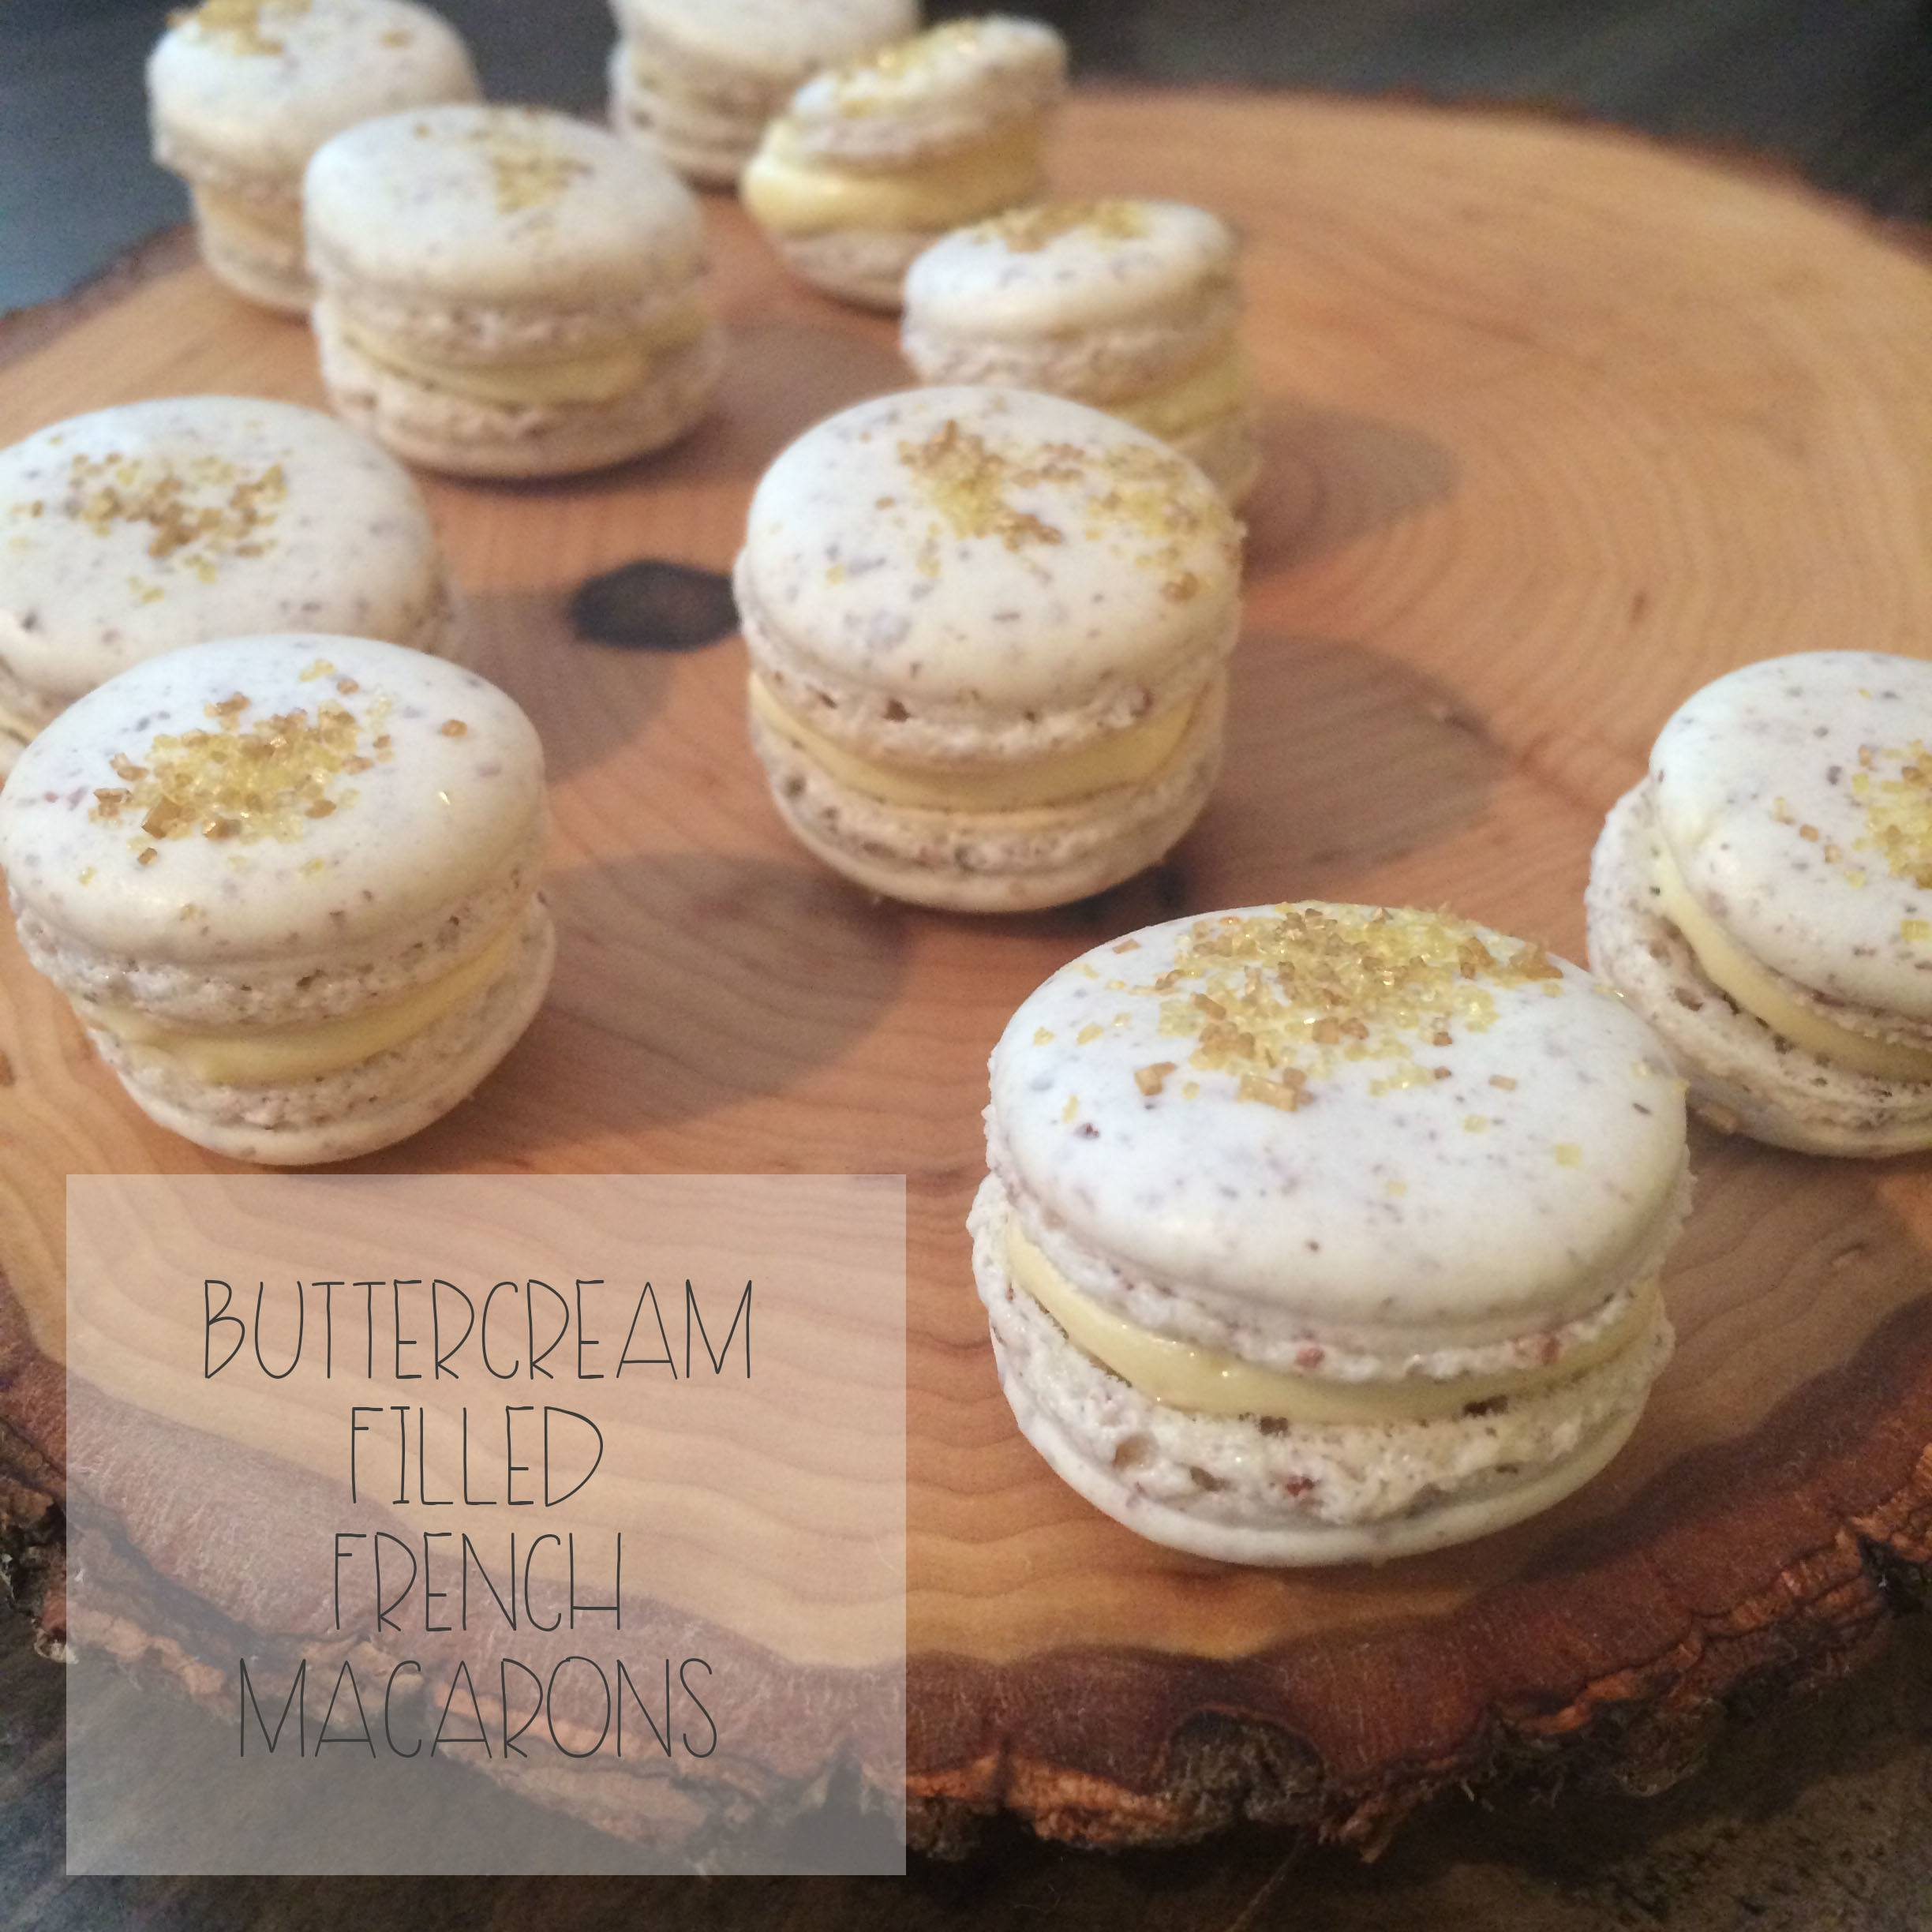 Buttercream filling French Macarons | Red Autumn Co copy